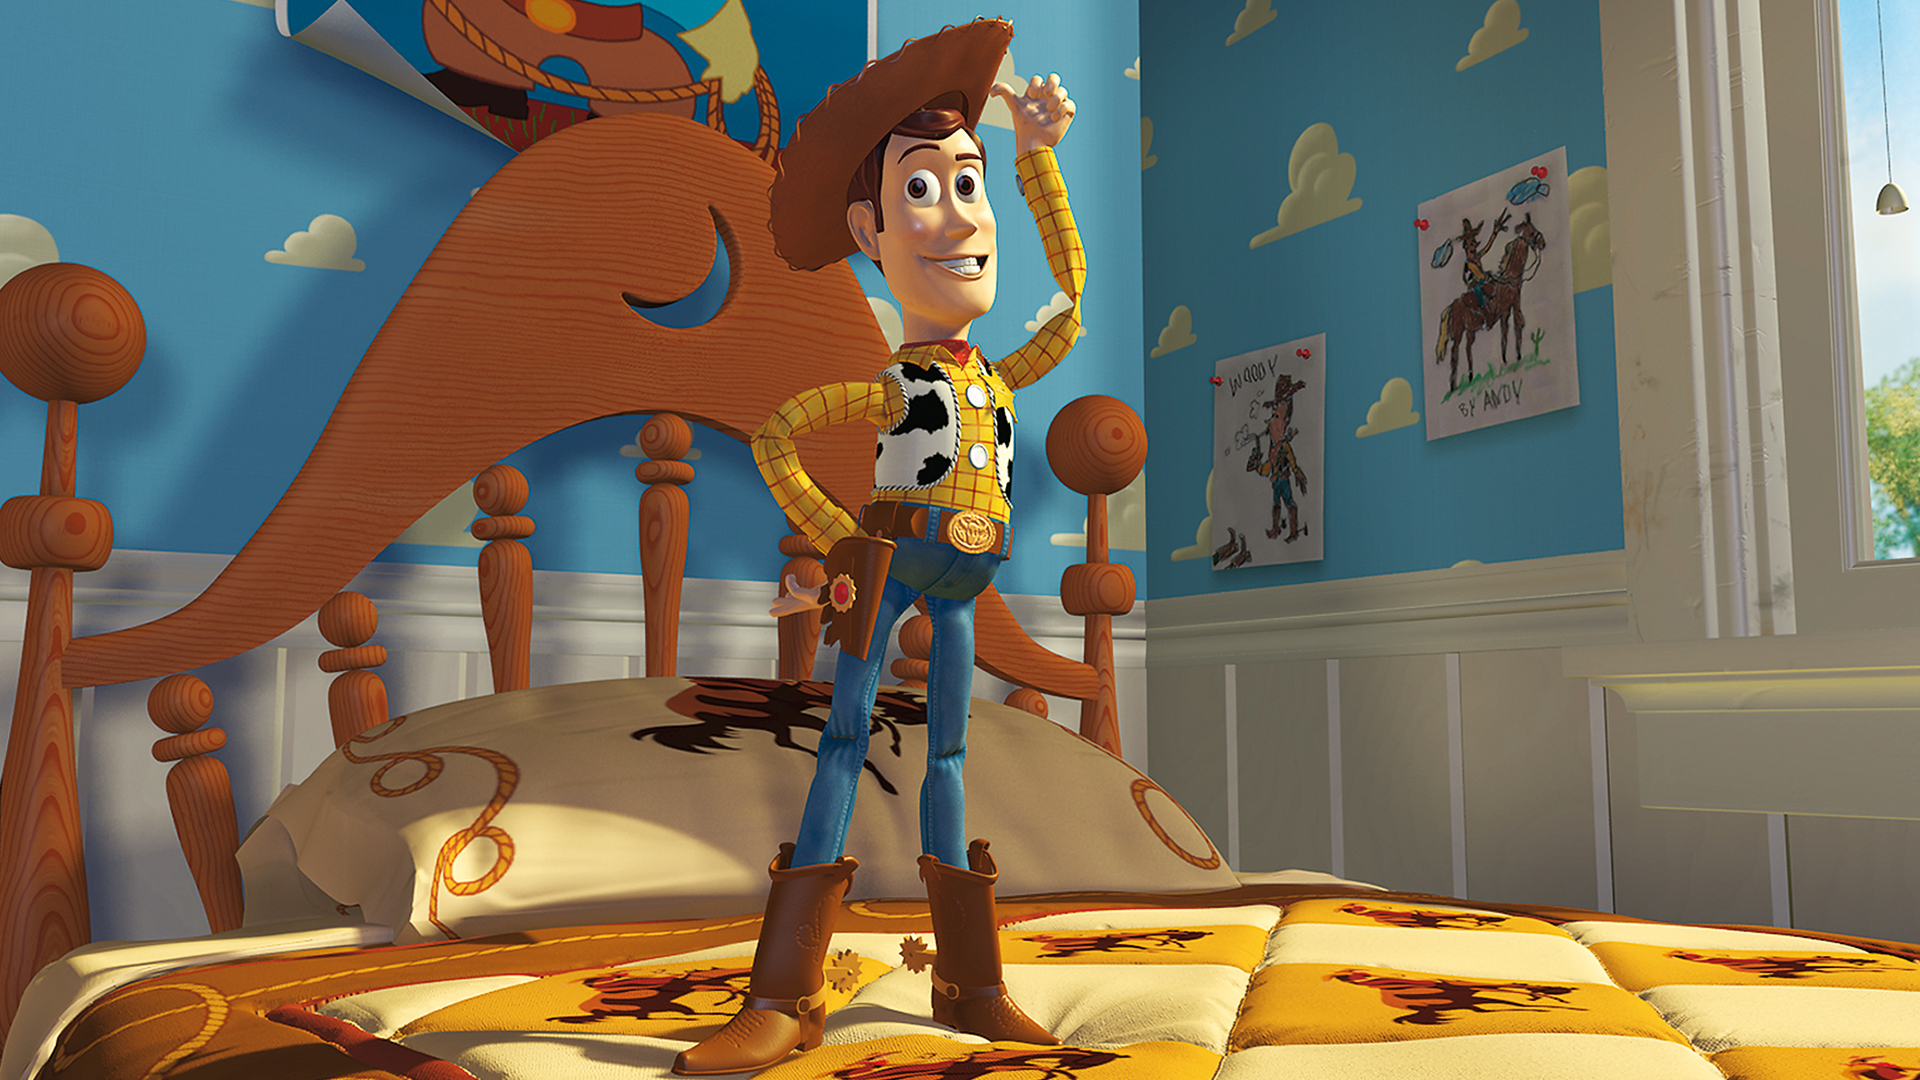 Toy story hd wallpapers - Toy story wallpaper ...